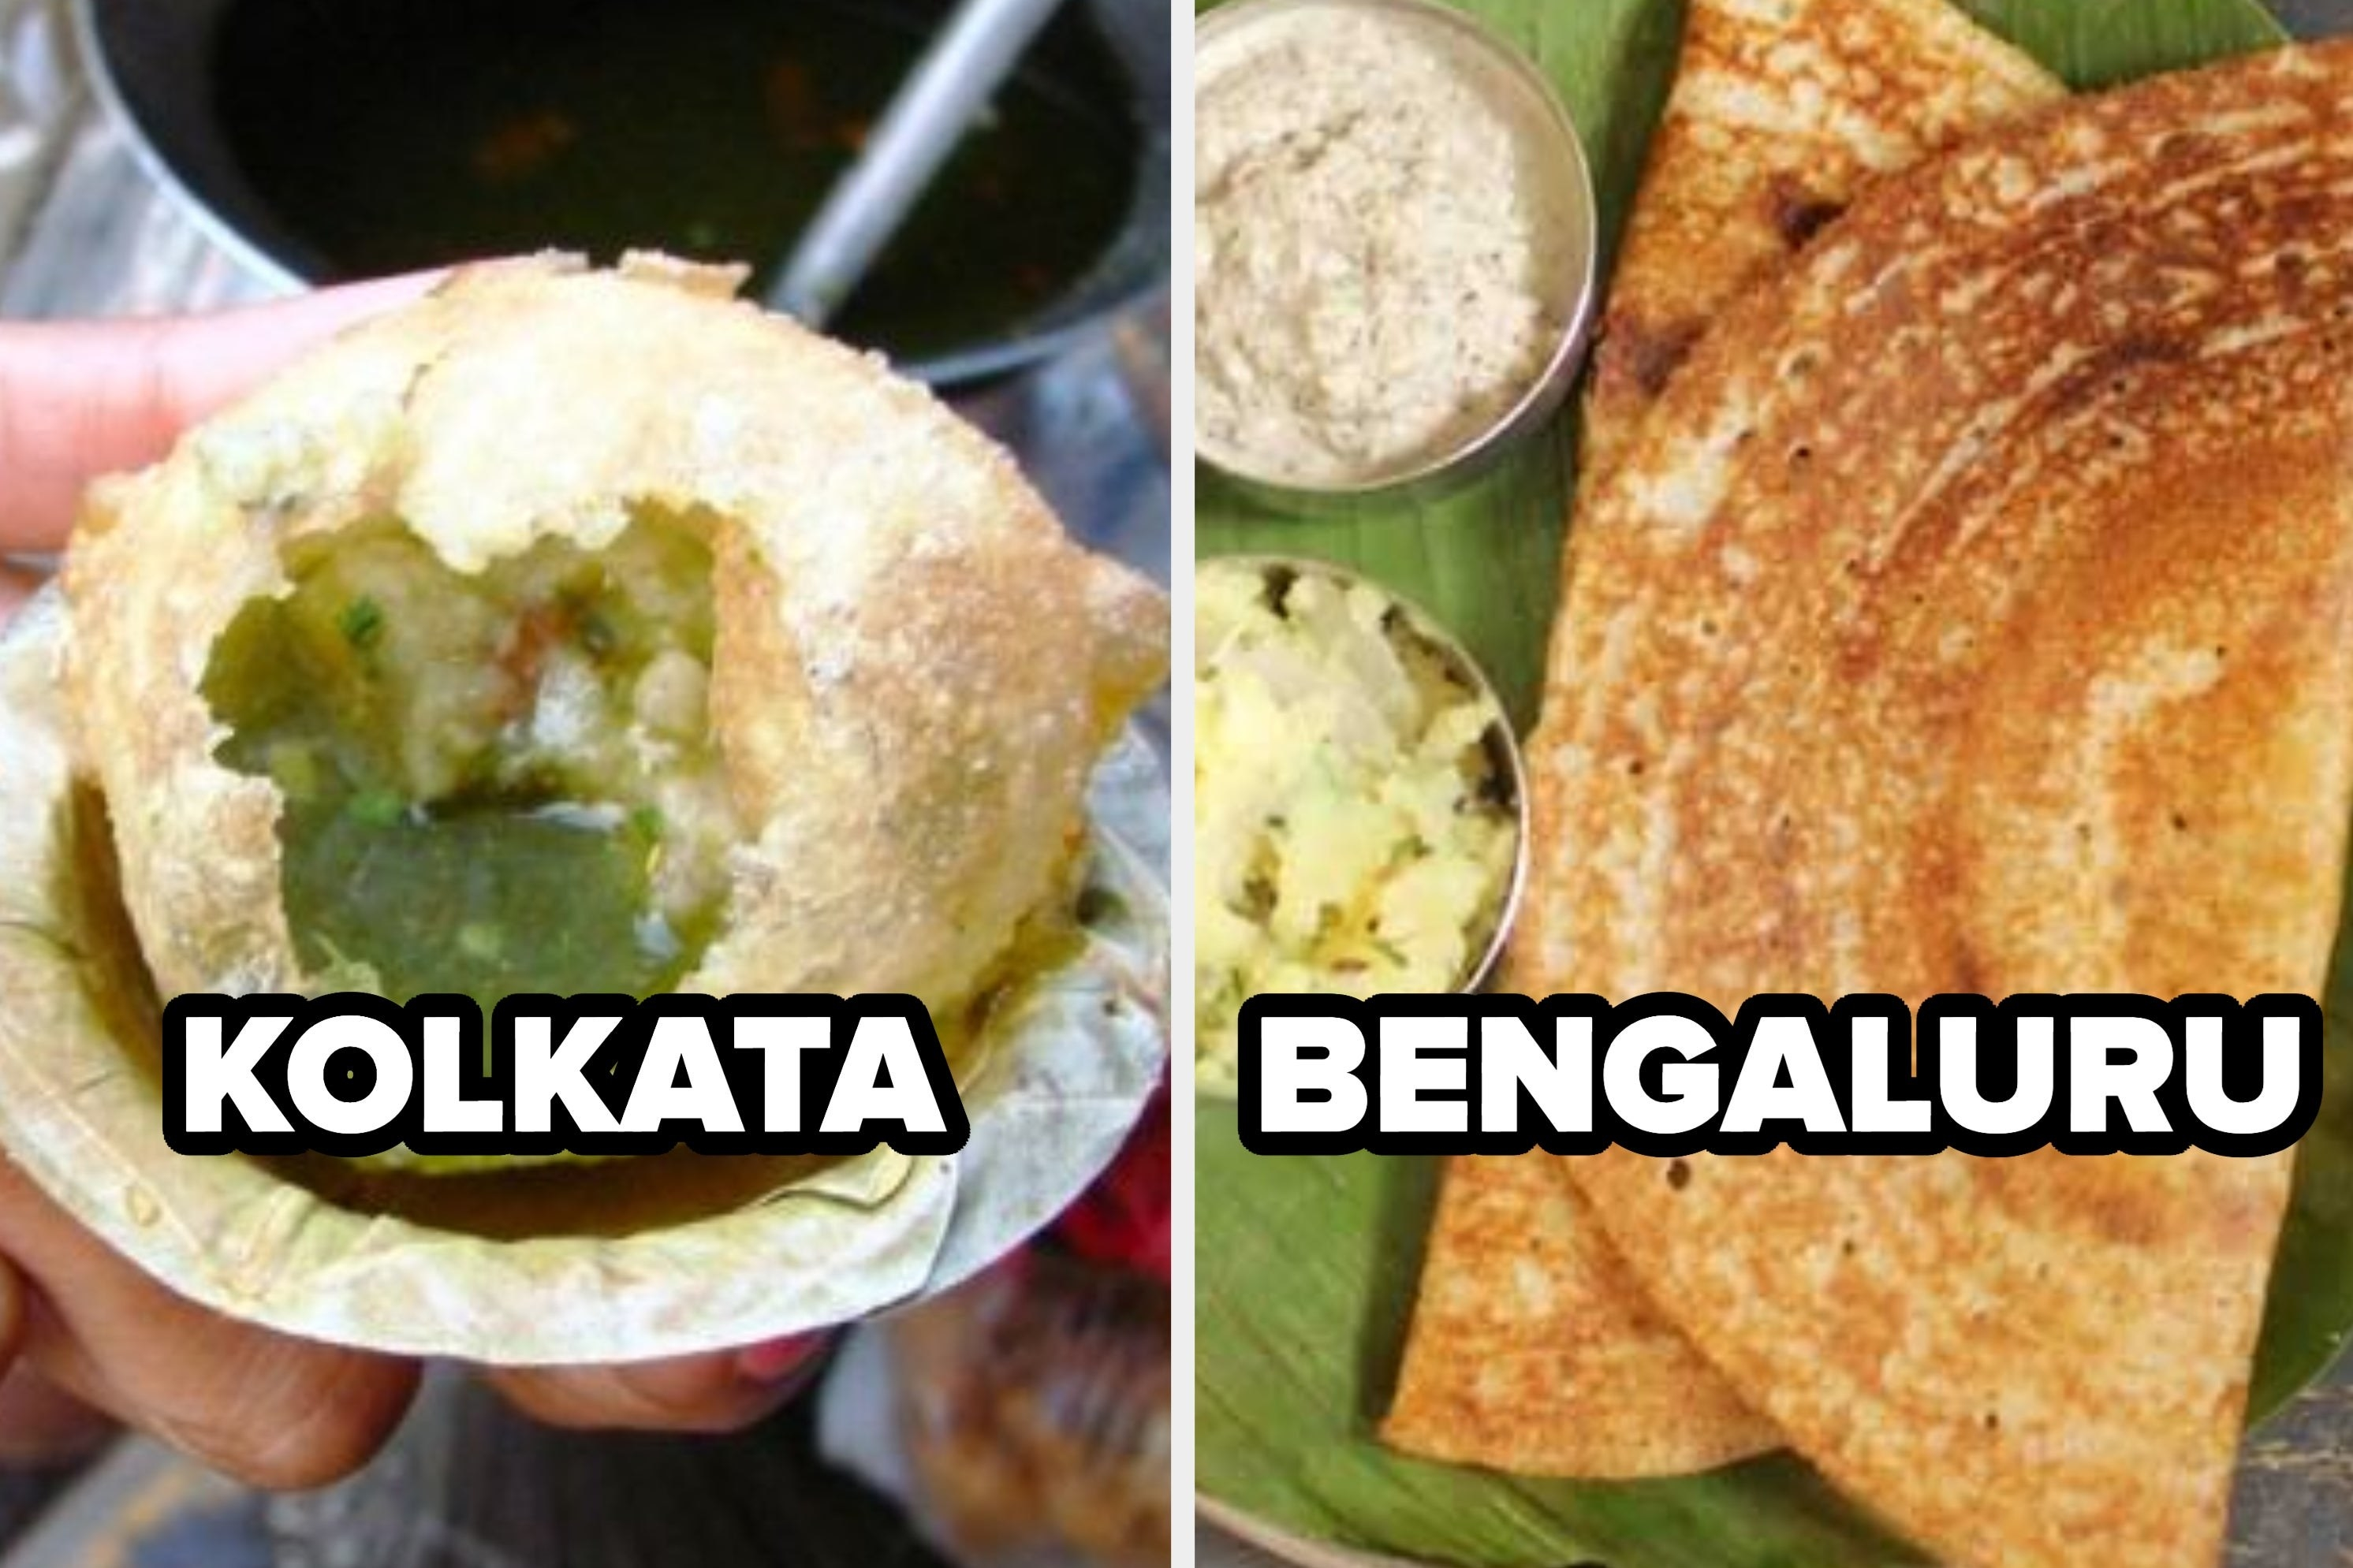 A collage of kolkata's phuchka and bengaluru's dosa